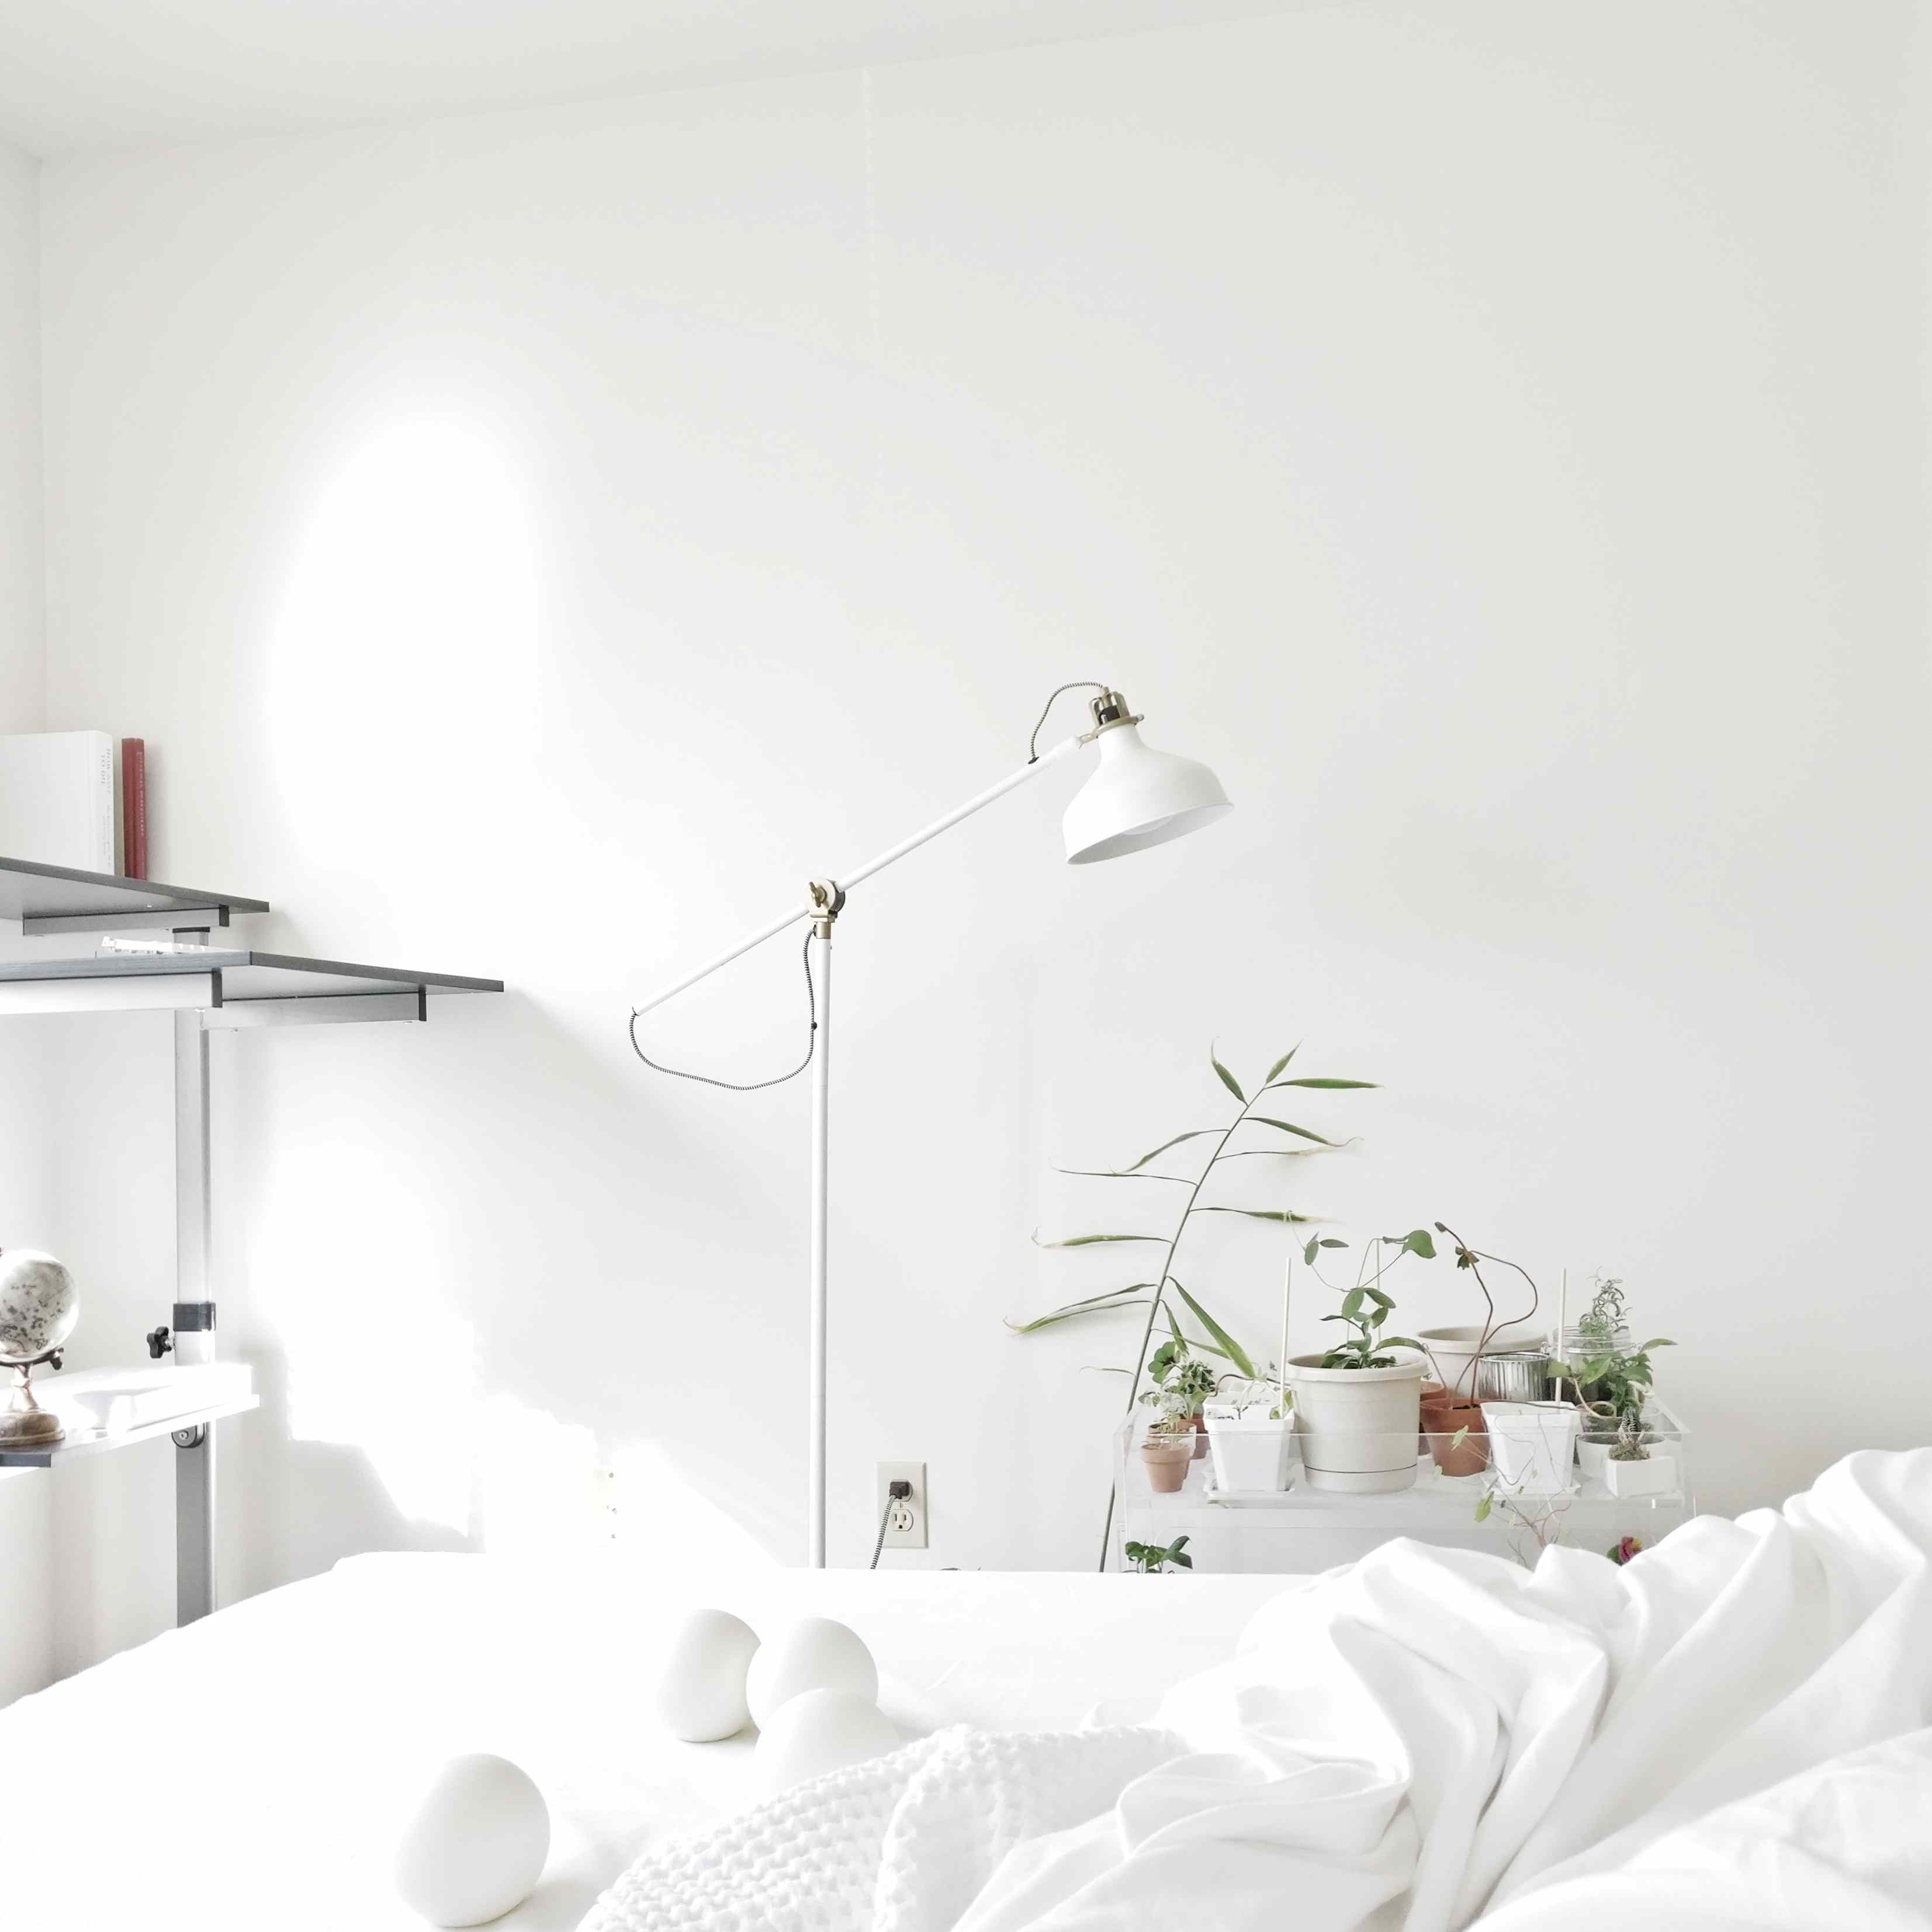 white bedroom with plants, lamp and white linens